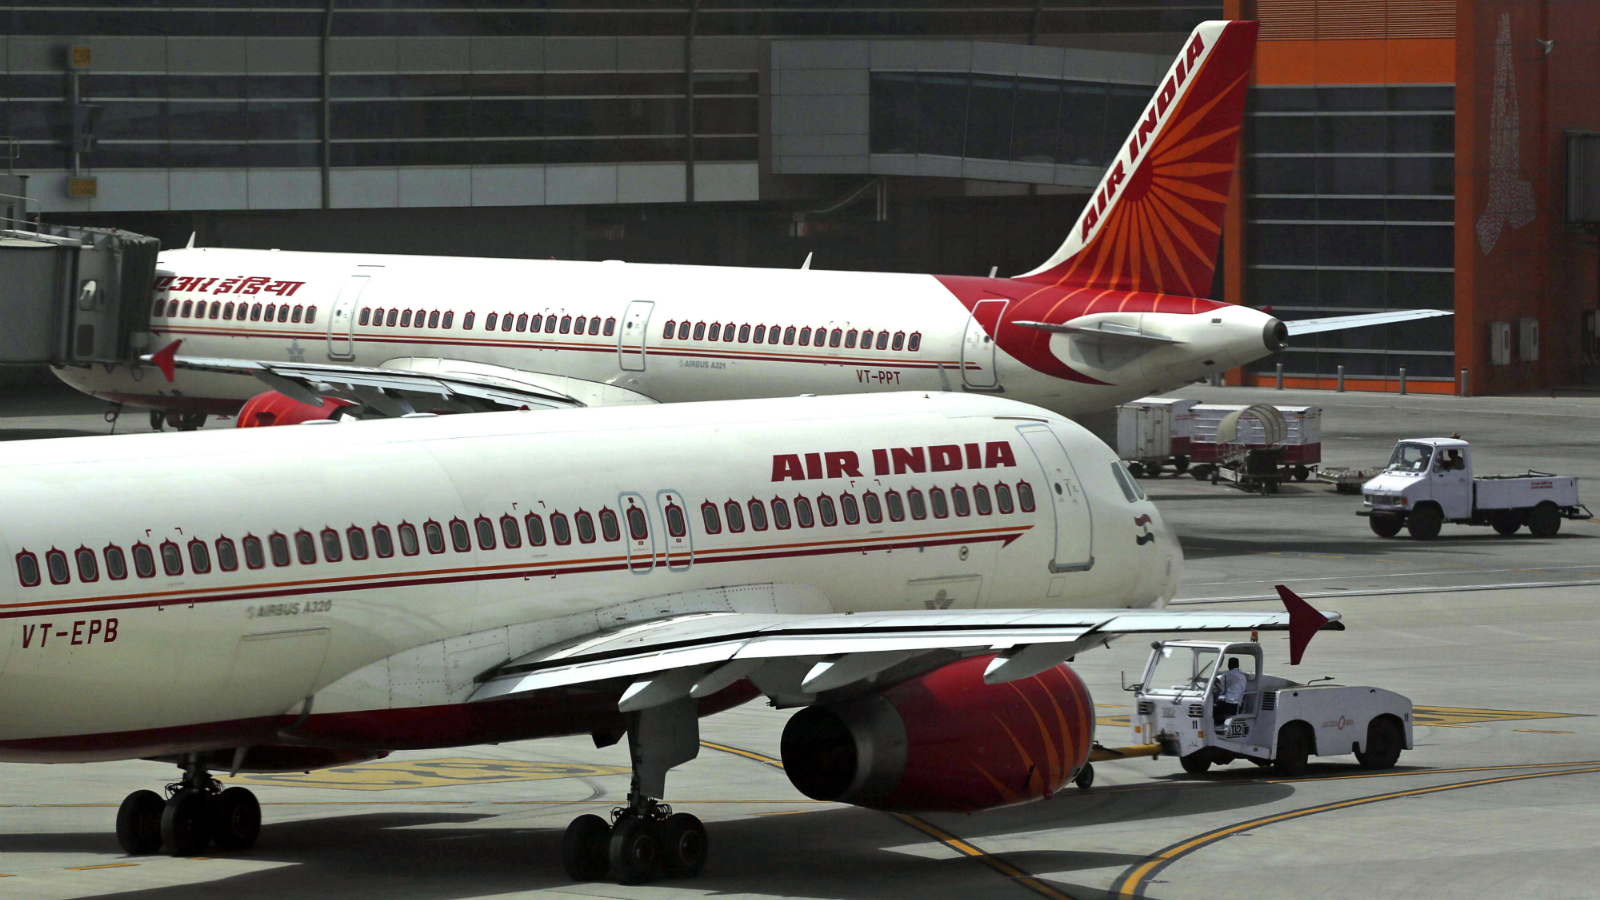 """In this May 18, 2012, file photo, Air India planes are parked on the tarmac at the Terminal 3 of Indira Gandhi International Airport in New Delhi, India. India's federal cabinet has approved a plan to privatise its debt-ridden national carrier Air India. A statement from the finance ministry Wednesday, June 28, 2017, said that the government had given """"in principle"""" approval to sell disinvest from the troubled airline which has struggled to emerge from the red as competition from a number of low-cost airlines has grown."""